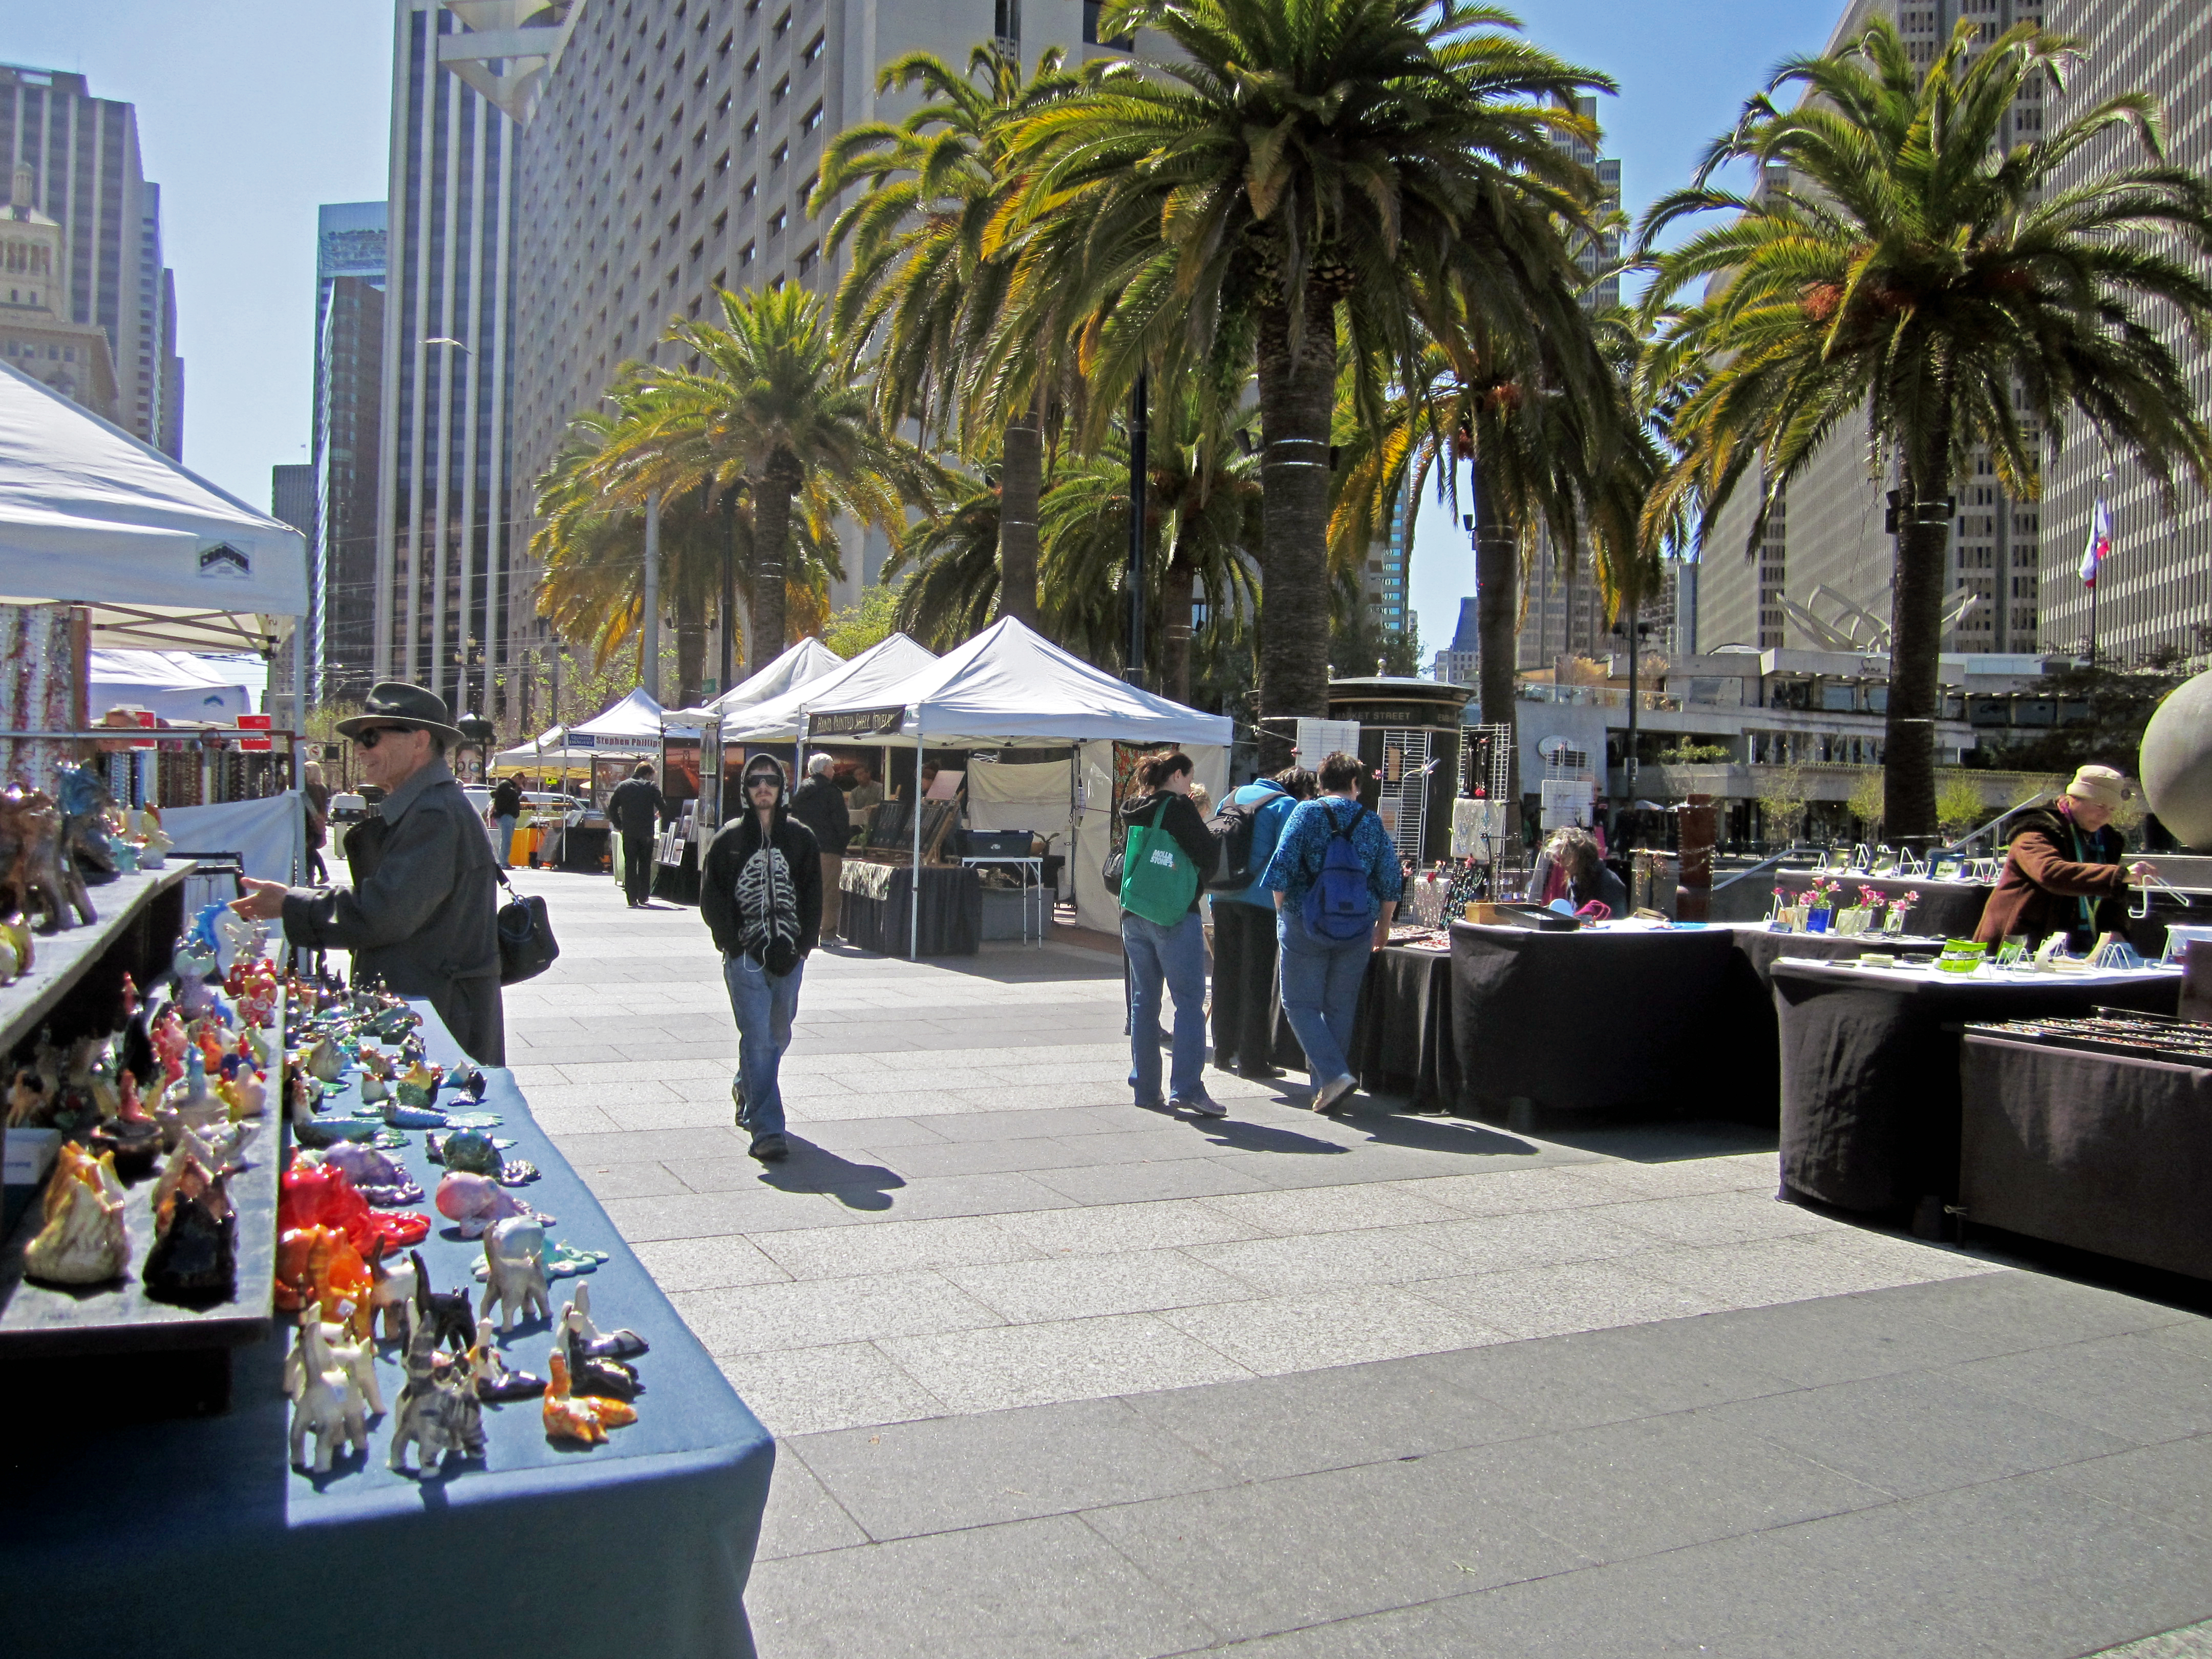 view of street artist booths at Justin Herman Plaza